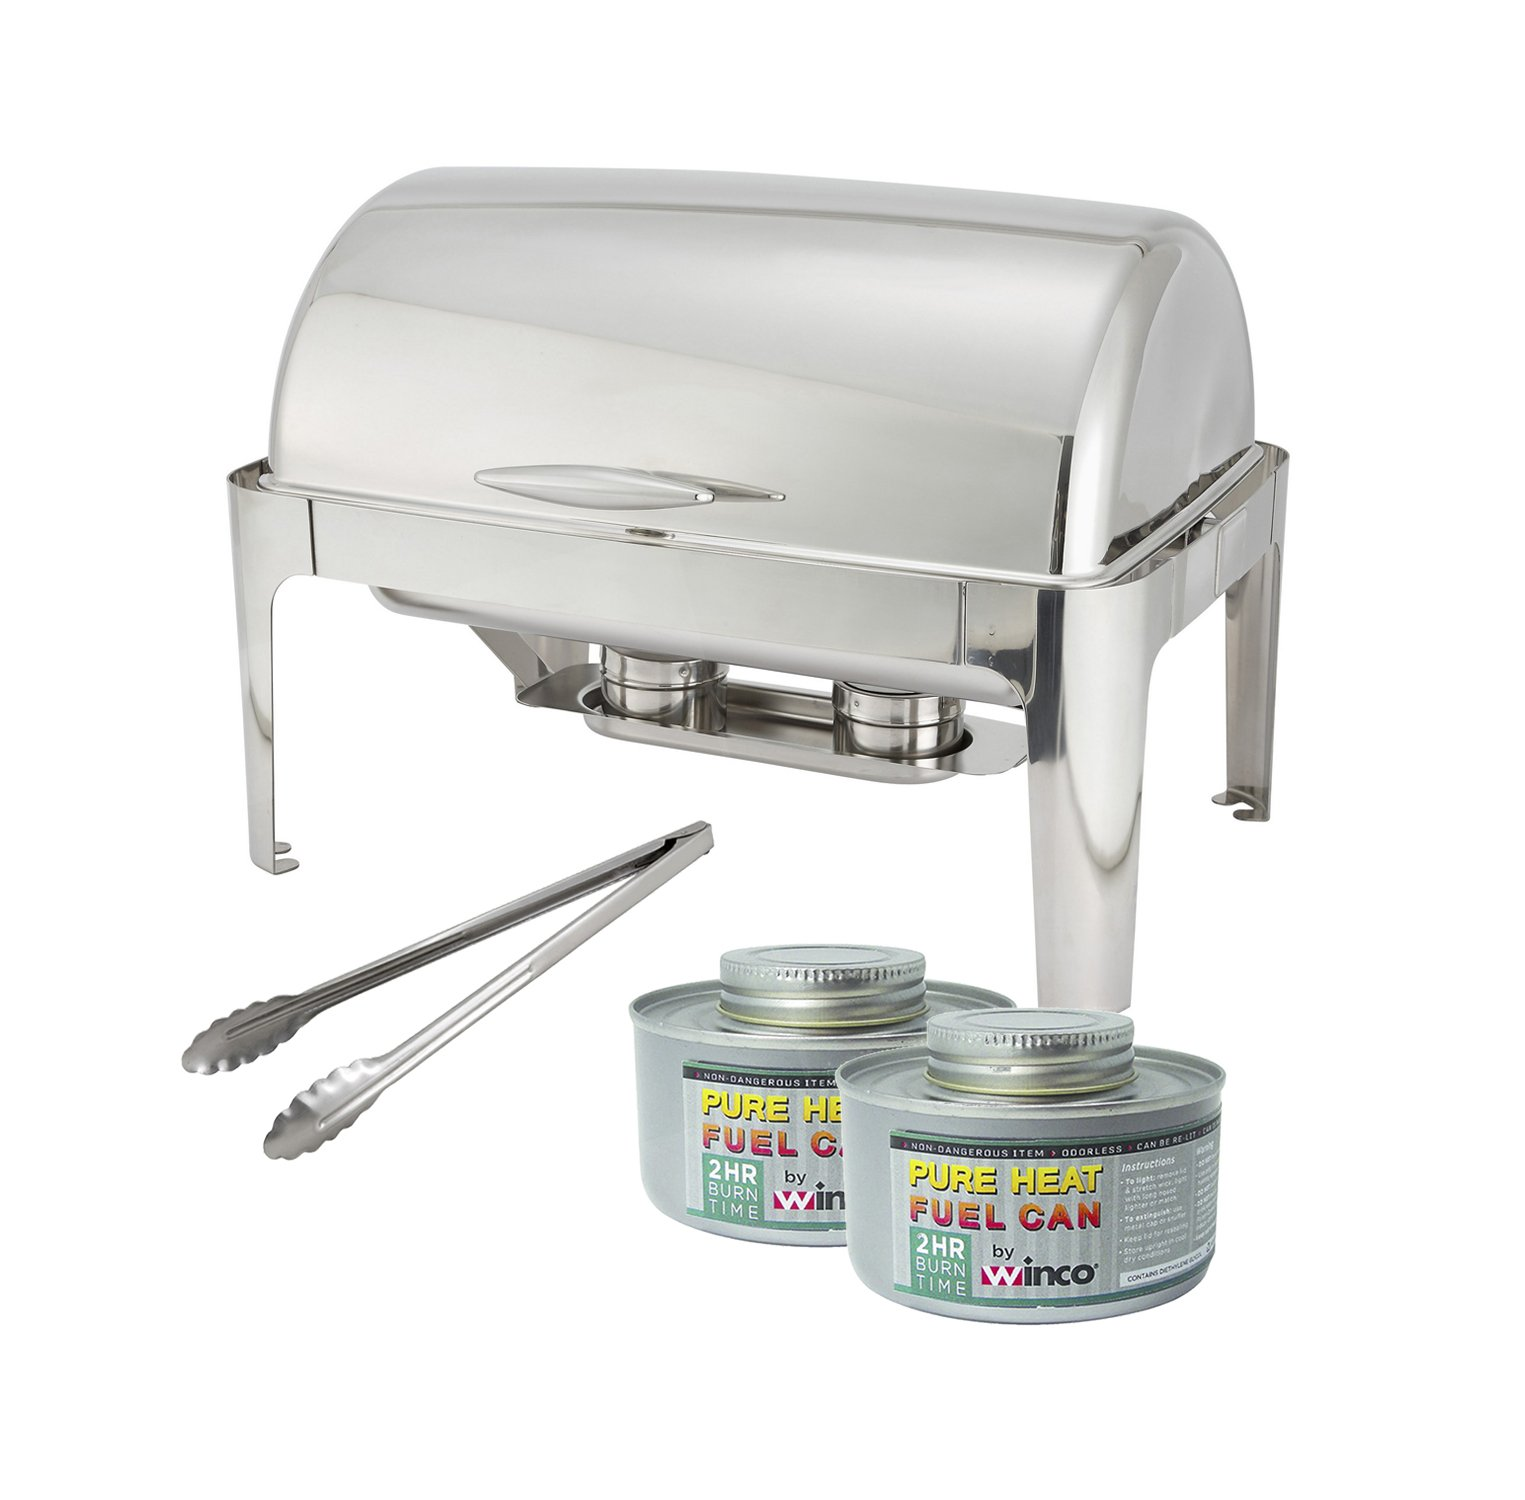 Winware 8 Quart Stainless Steel Full Size Roll Top Chafer, Chafing Dish Set with 2 Chafing Dish Fuel and 16-Inch Stainless Steel Multi-Function Tong